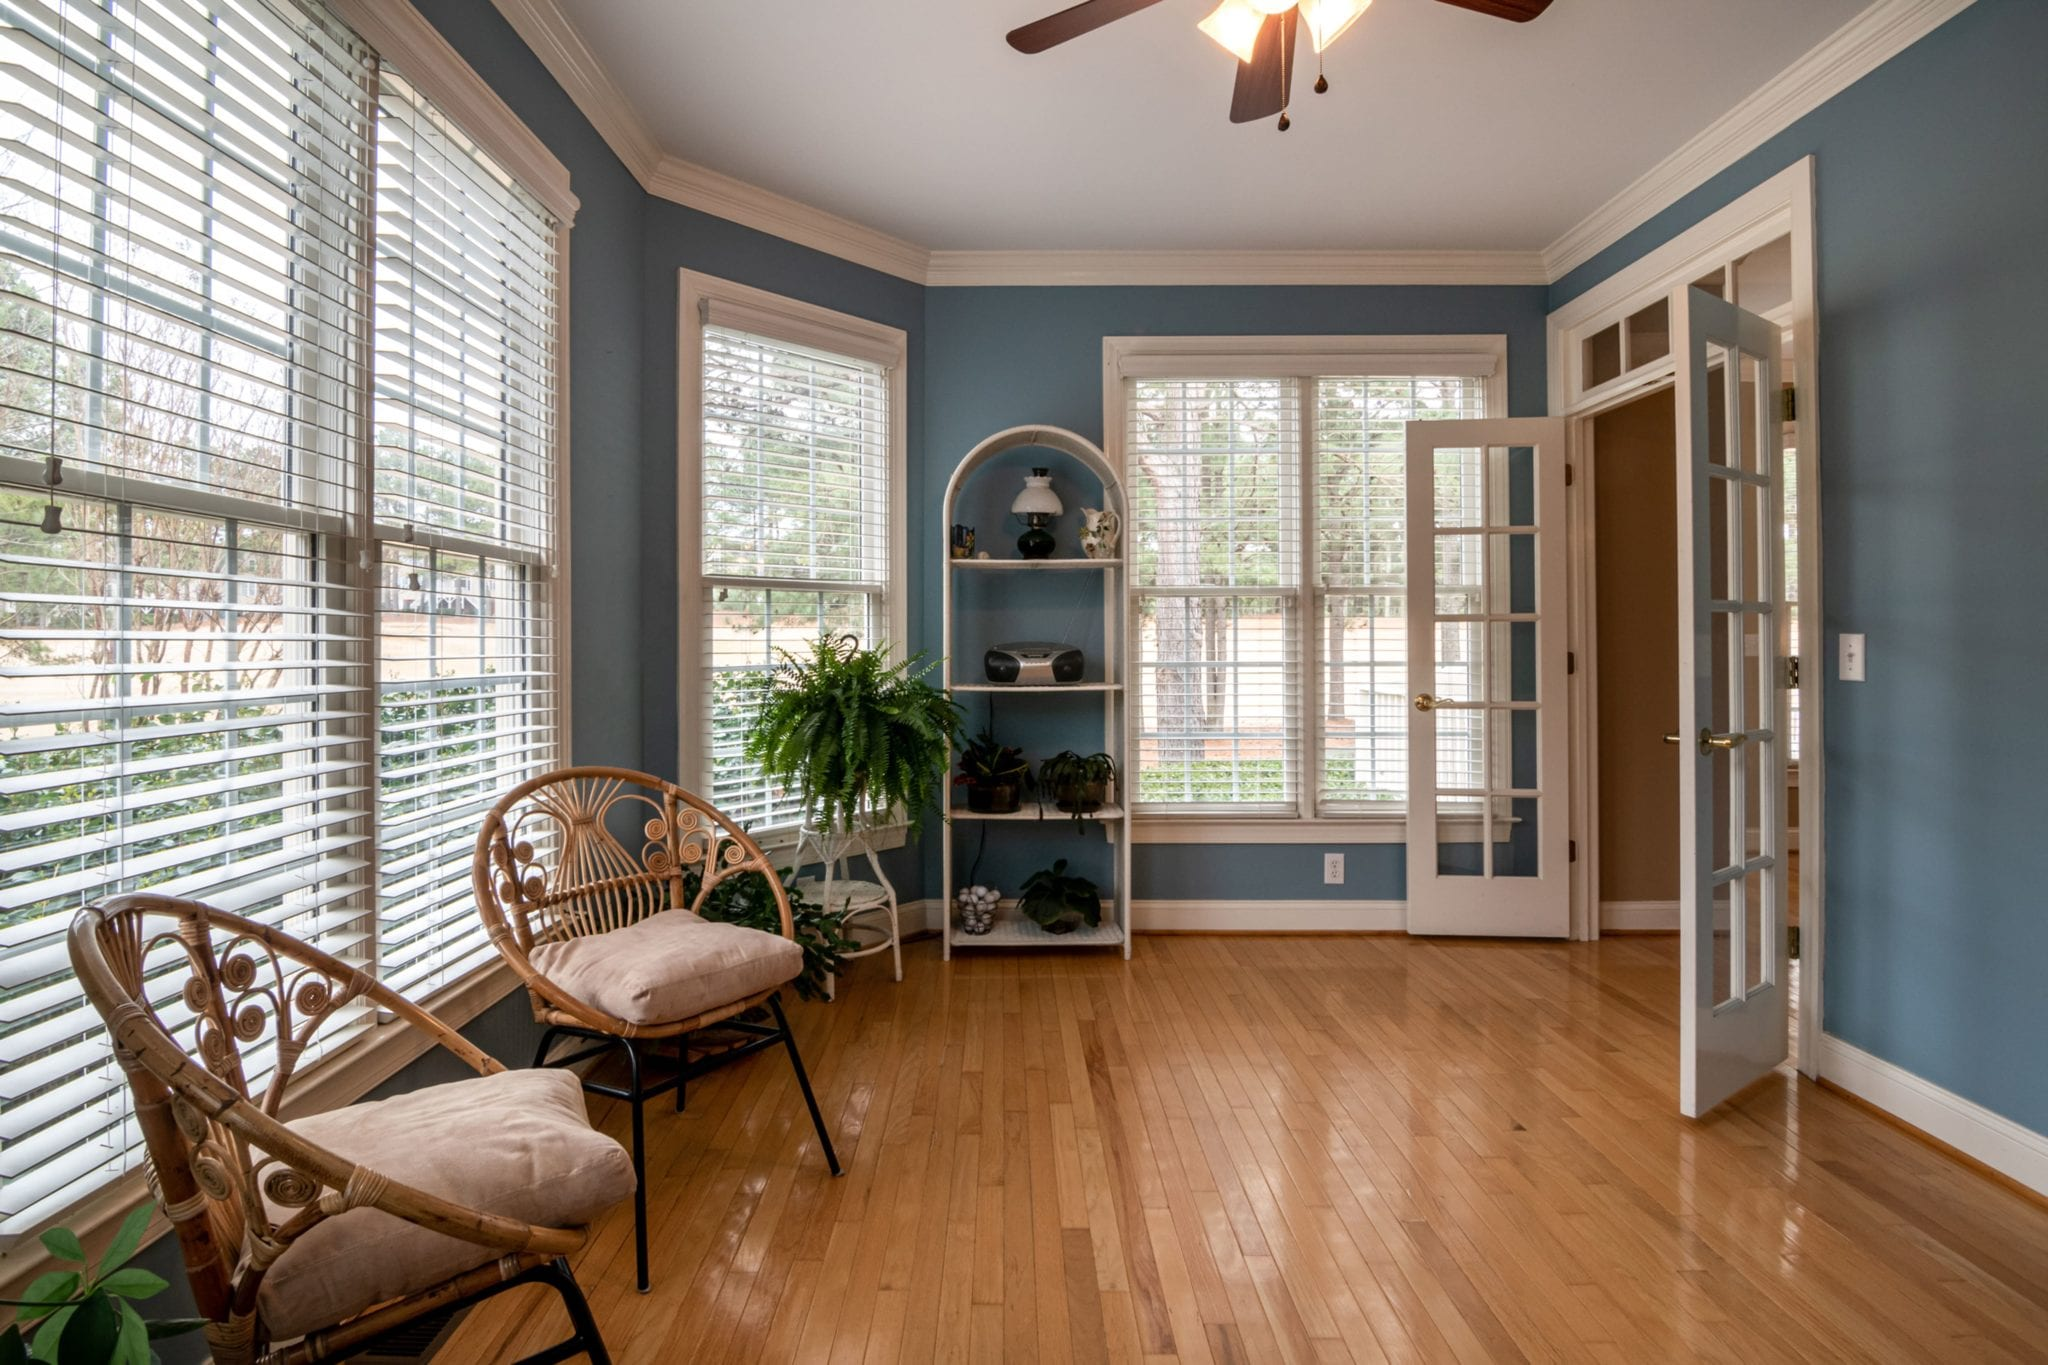 A Complete Guide on How to Refinish Your Hardwood Floor